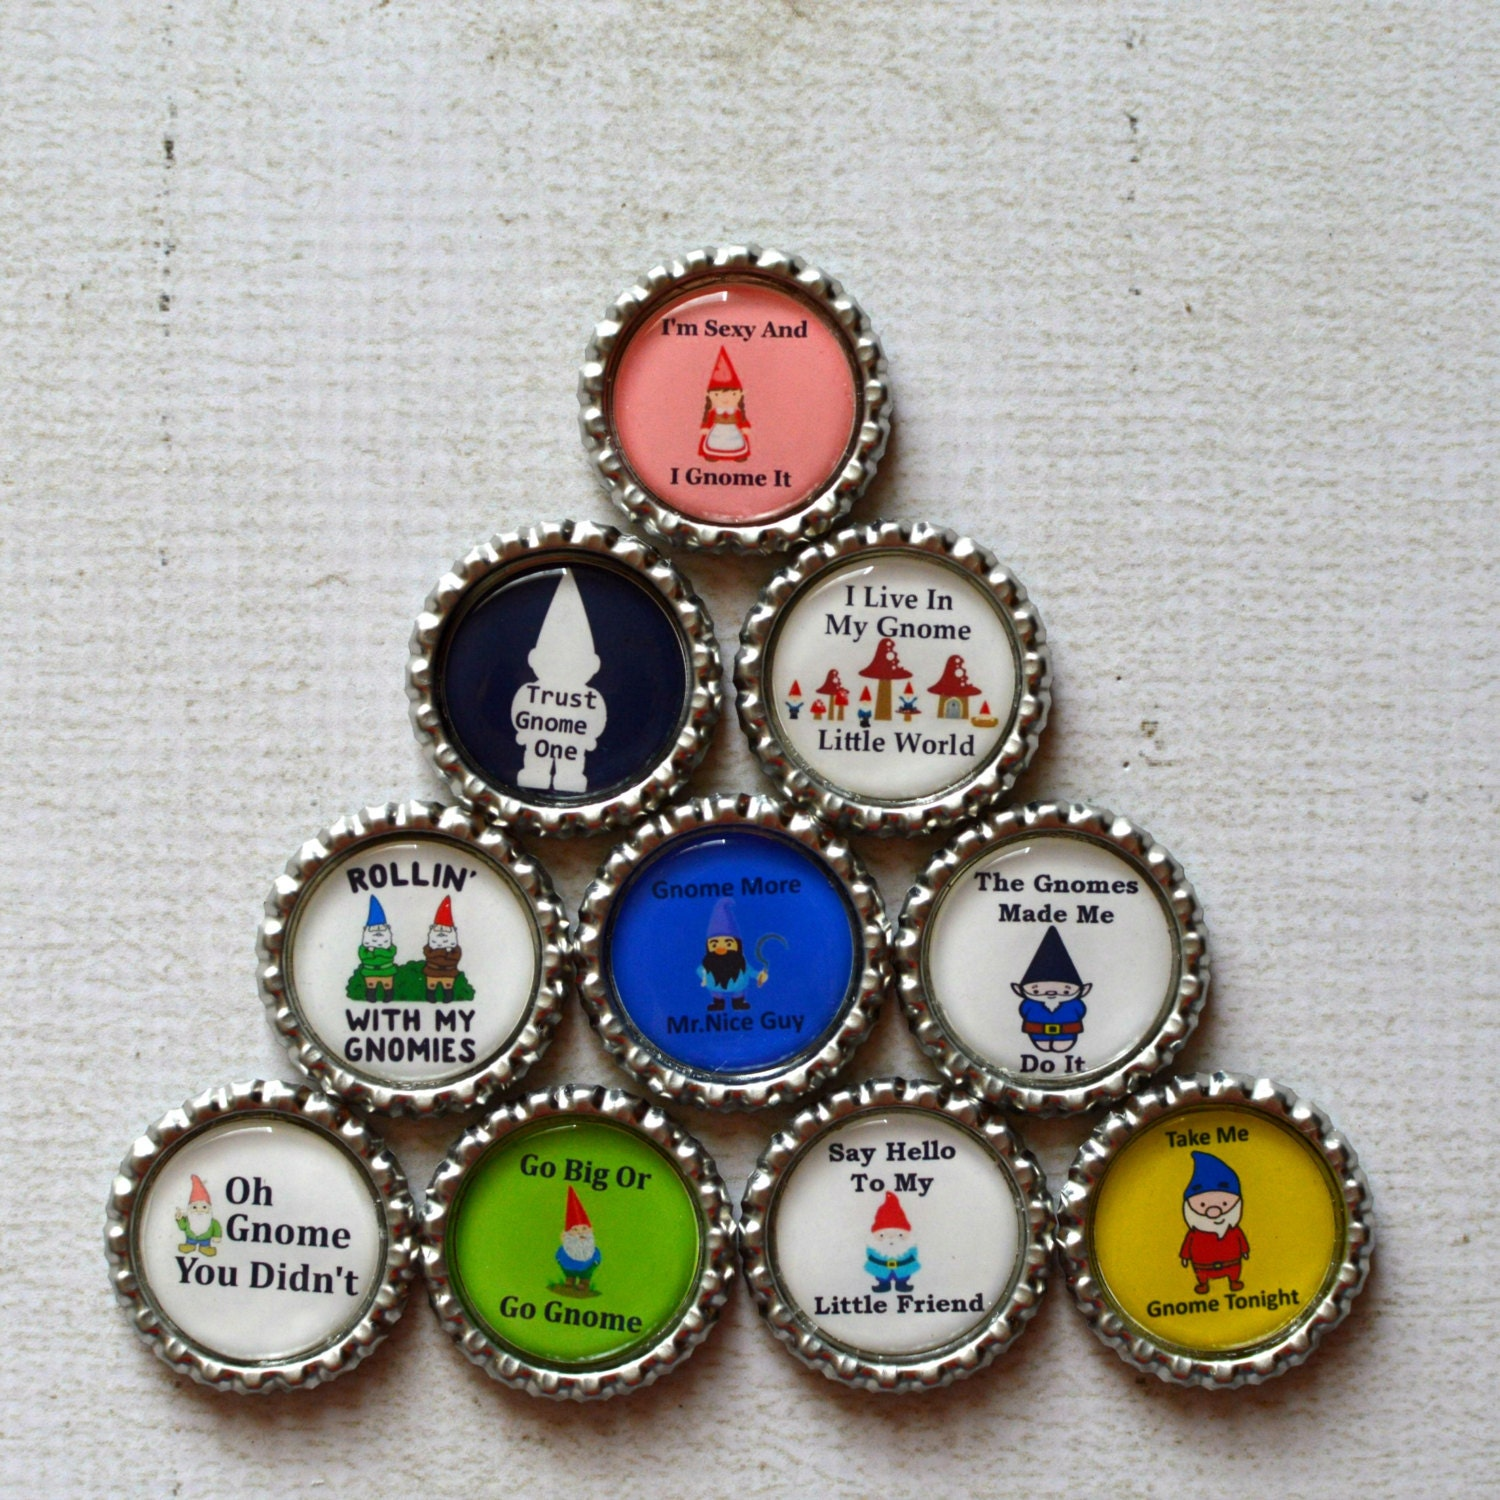 Funny Gnomes: Funny Gnome Bottlecap Magnets Gnome Decor Kitchen Magnets